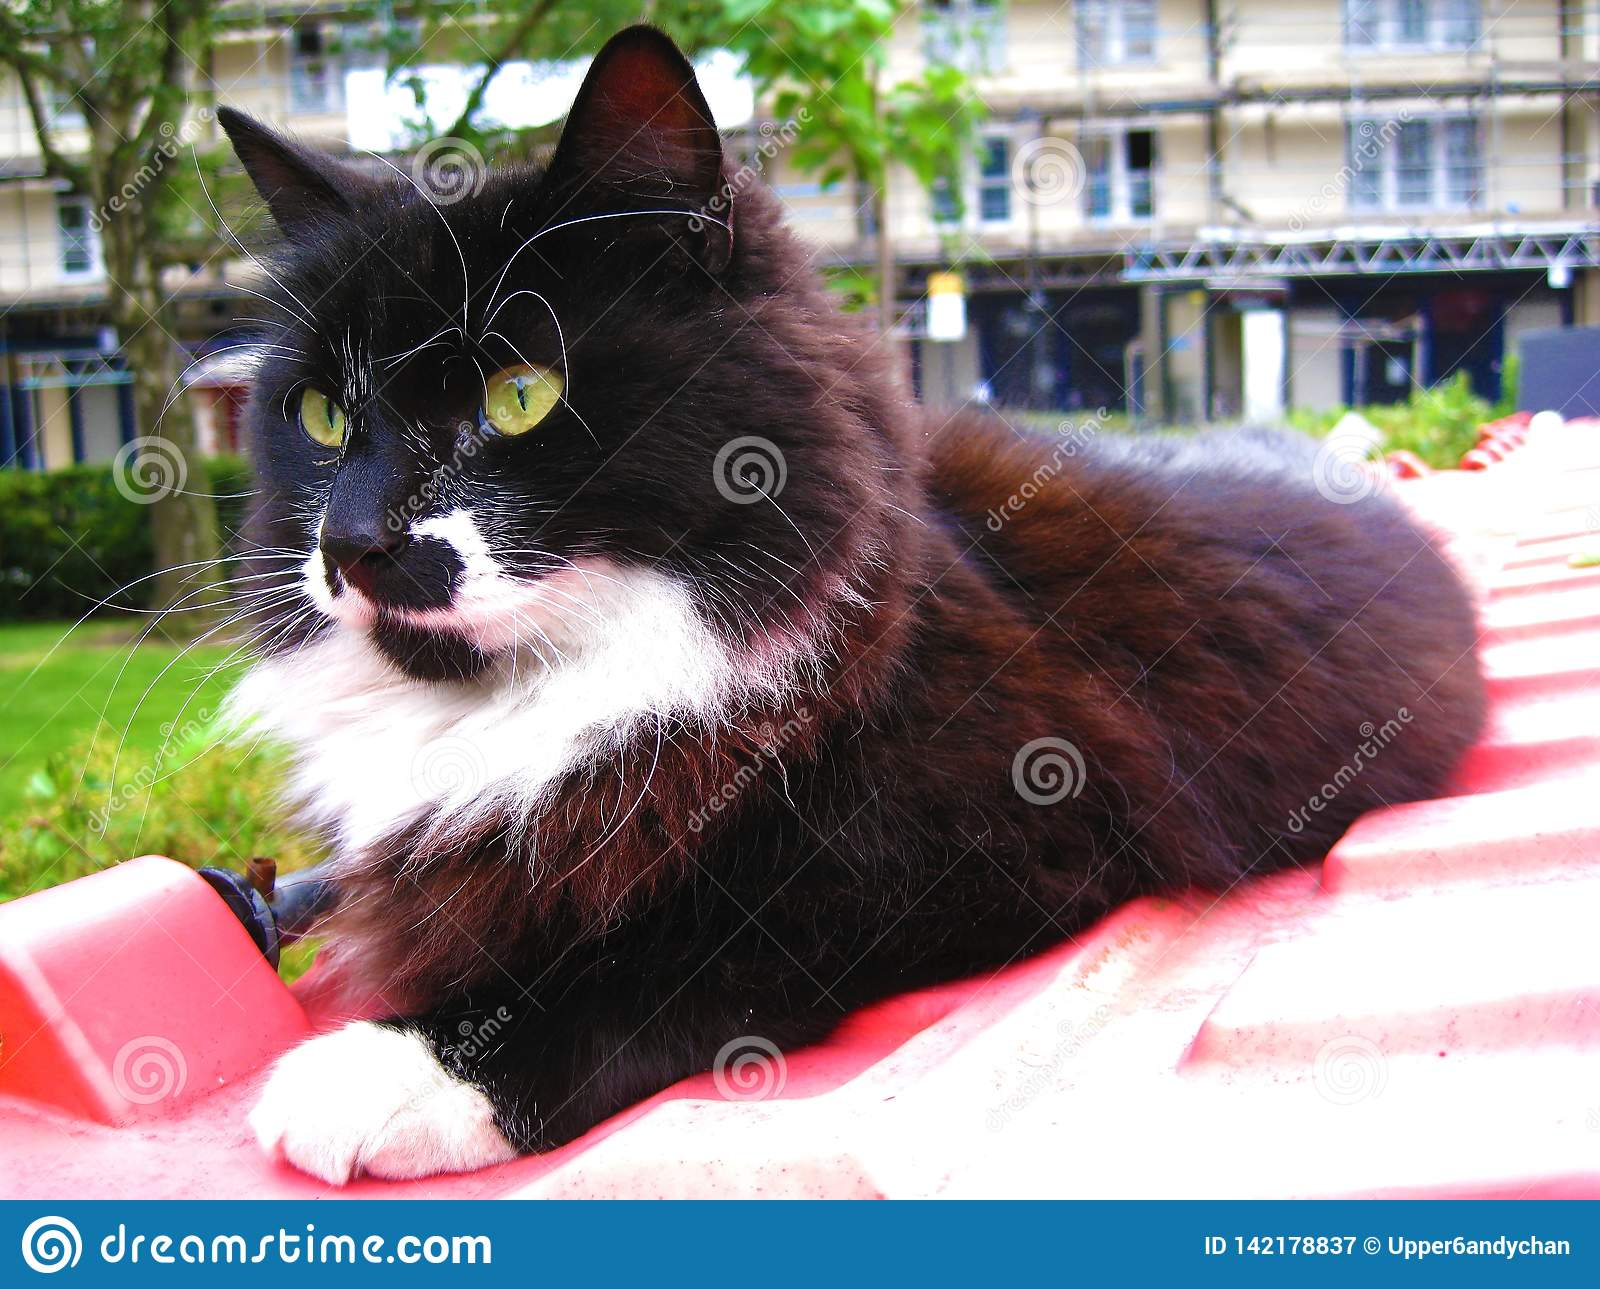 A black and white cat with yellow eyes relaxing on a red bin in Portobello Market in Notting Hill